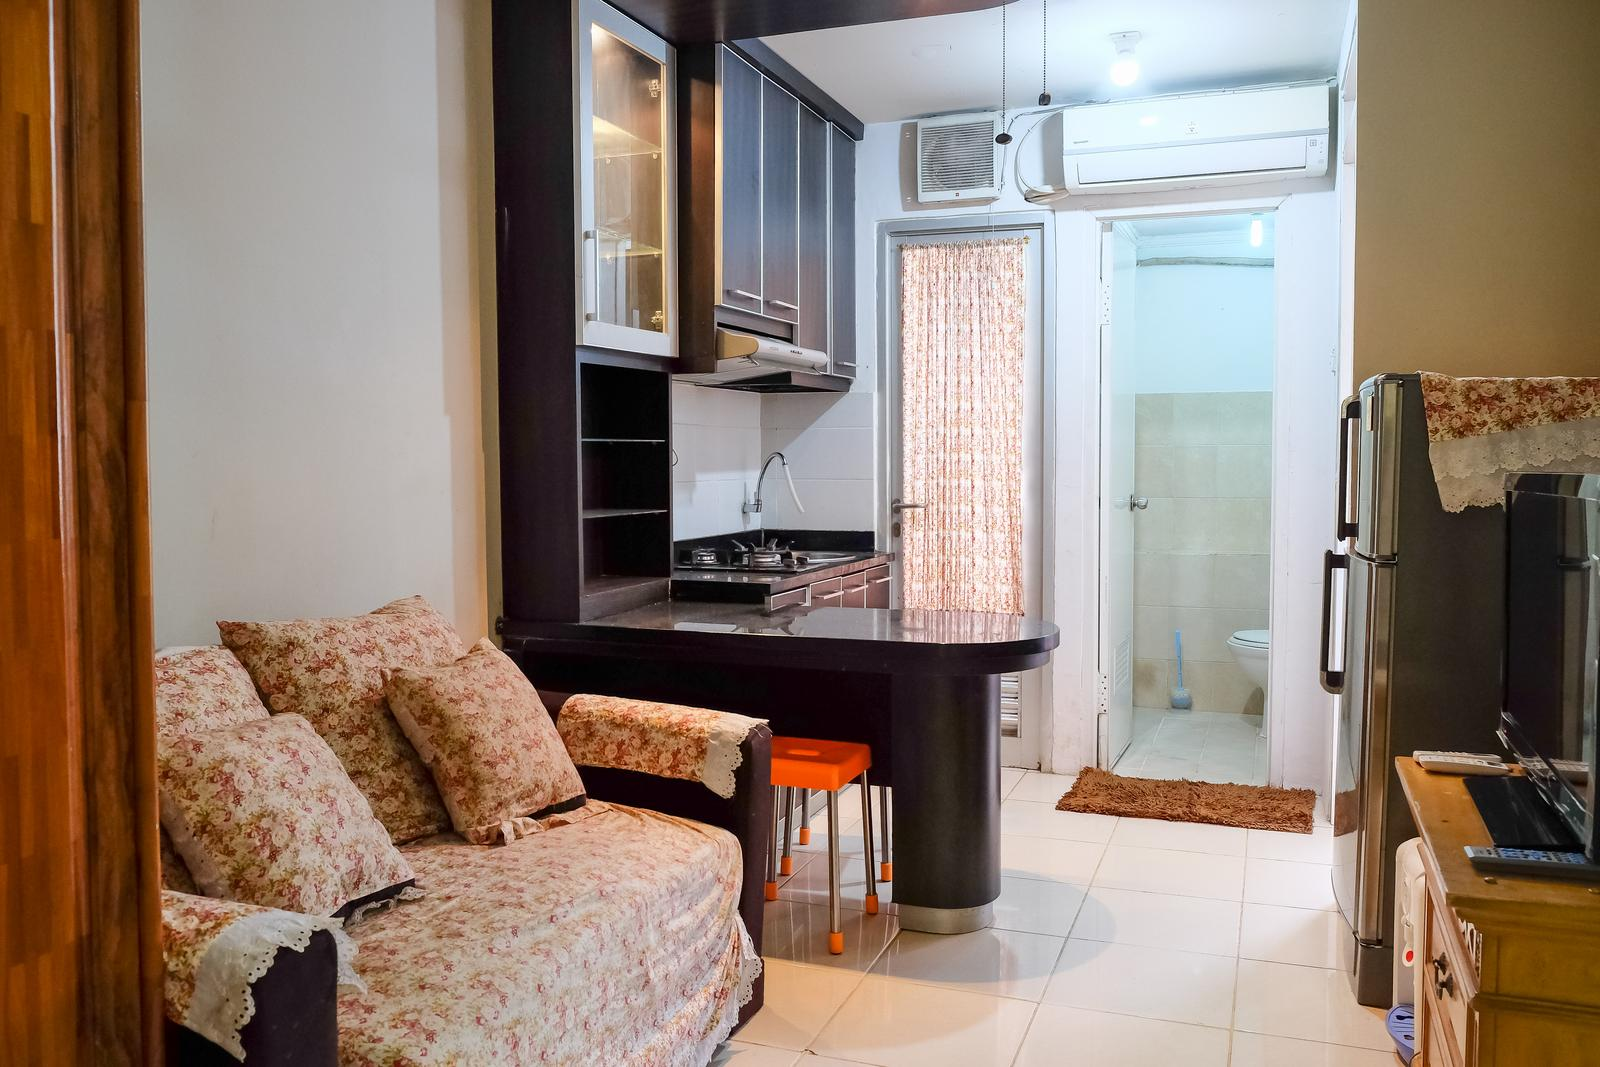 Gading Nias Residence - 2BR Emerald With Pool Access At Gading Nias Residences